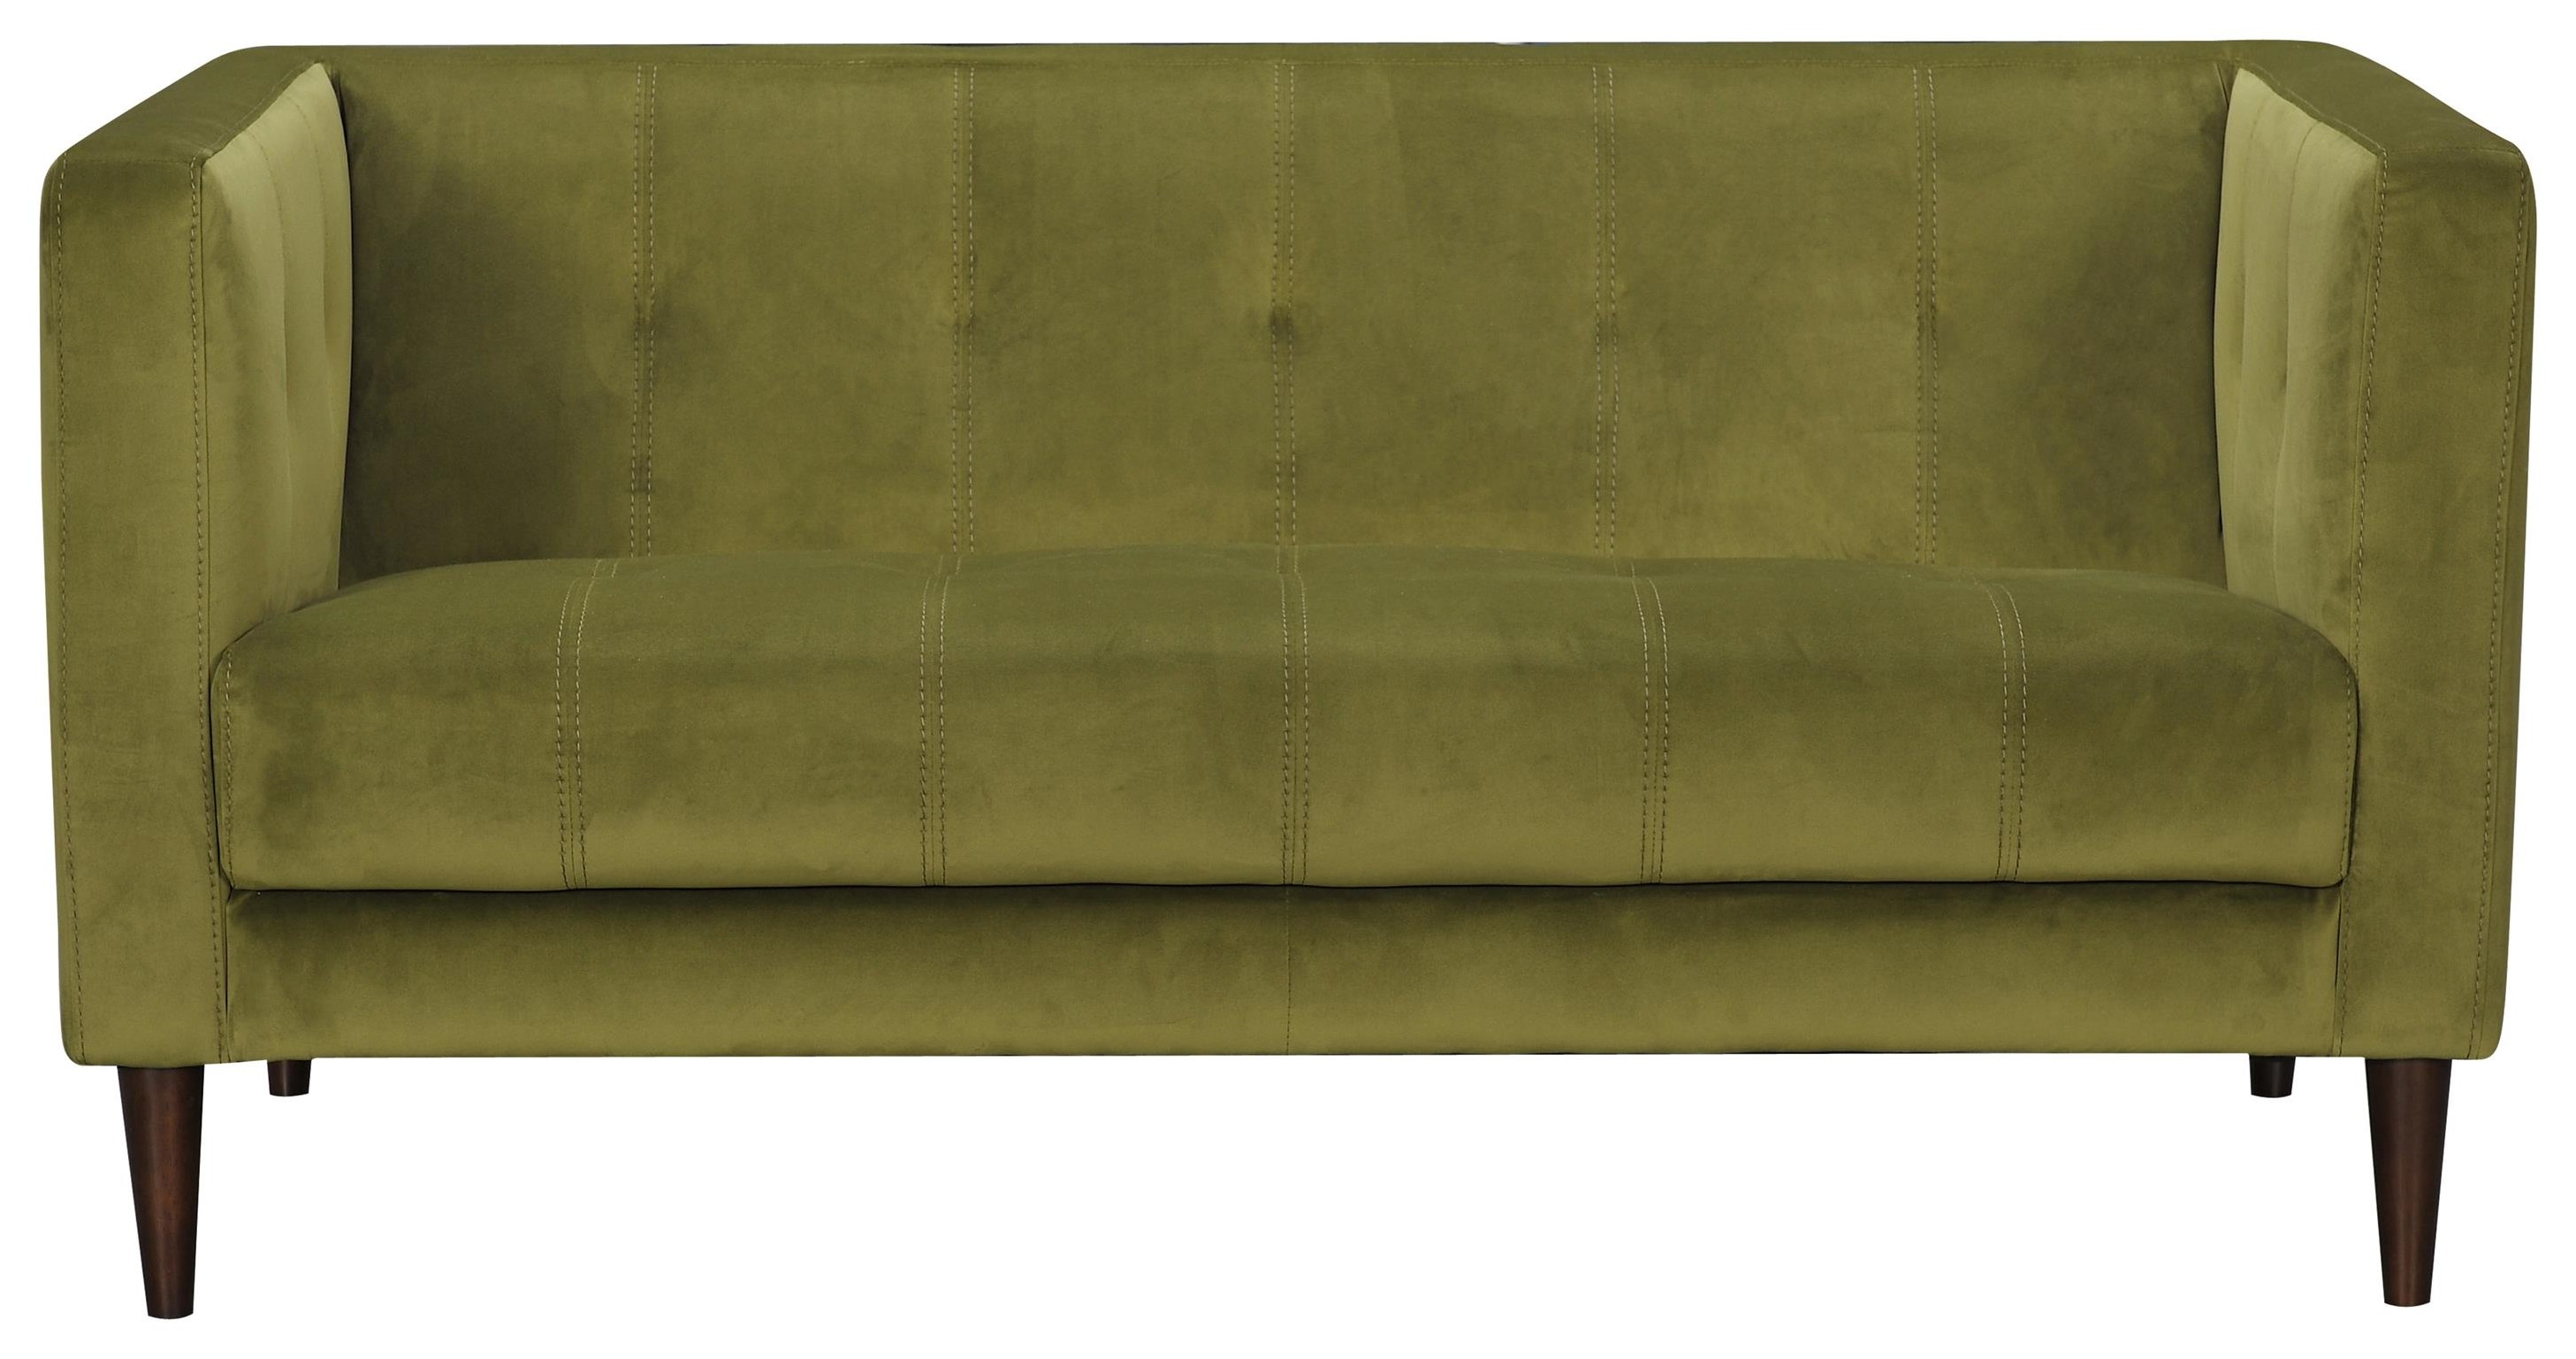 Olivia Loveseat by Violino at Red Knot